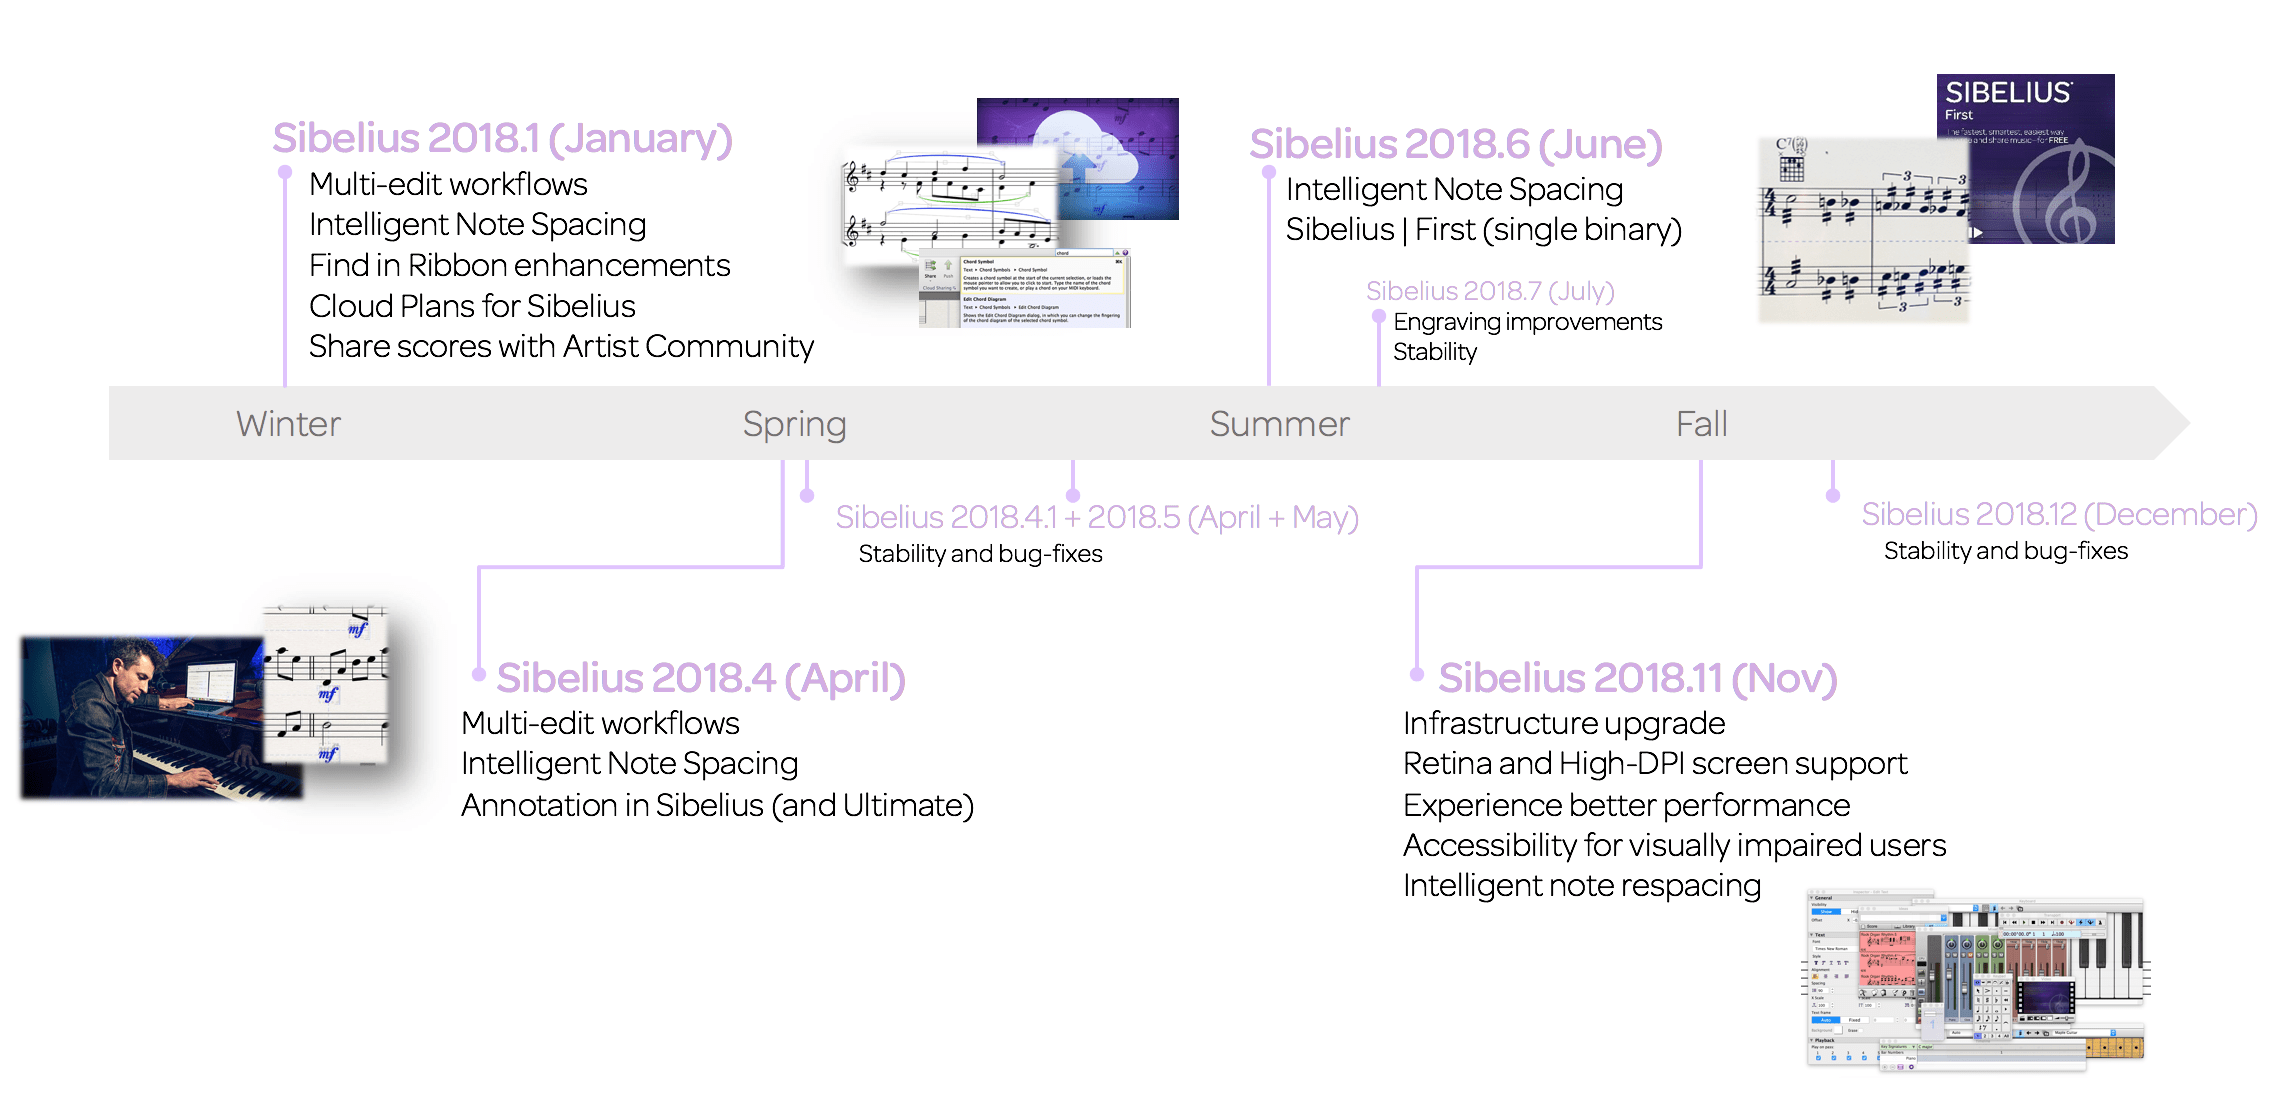 Summary of Sibelius releases in 2018